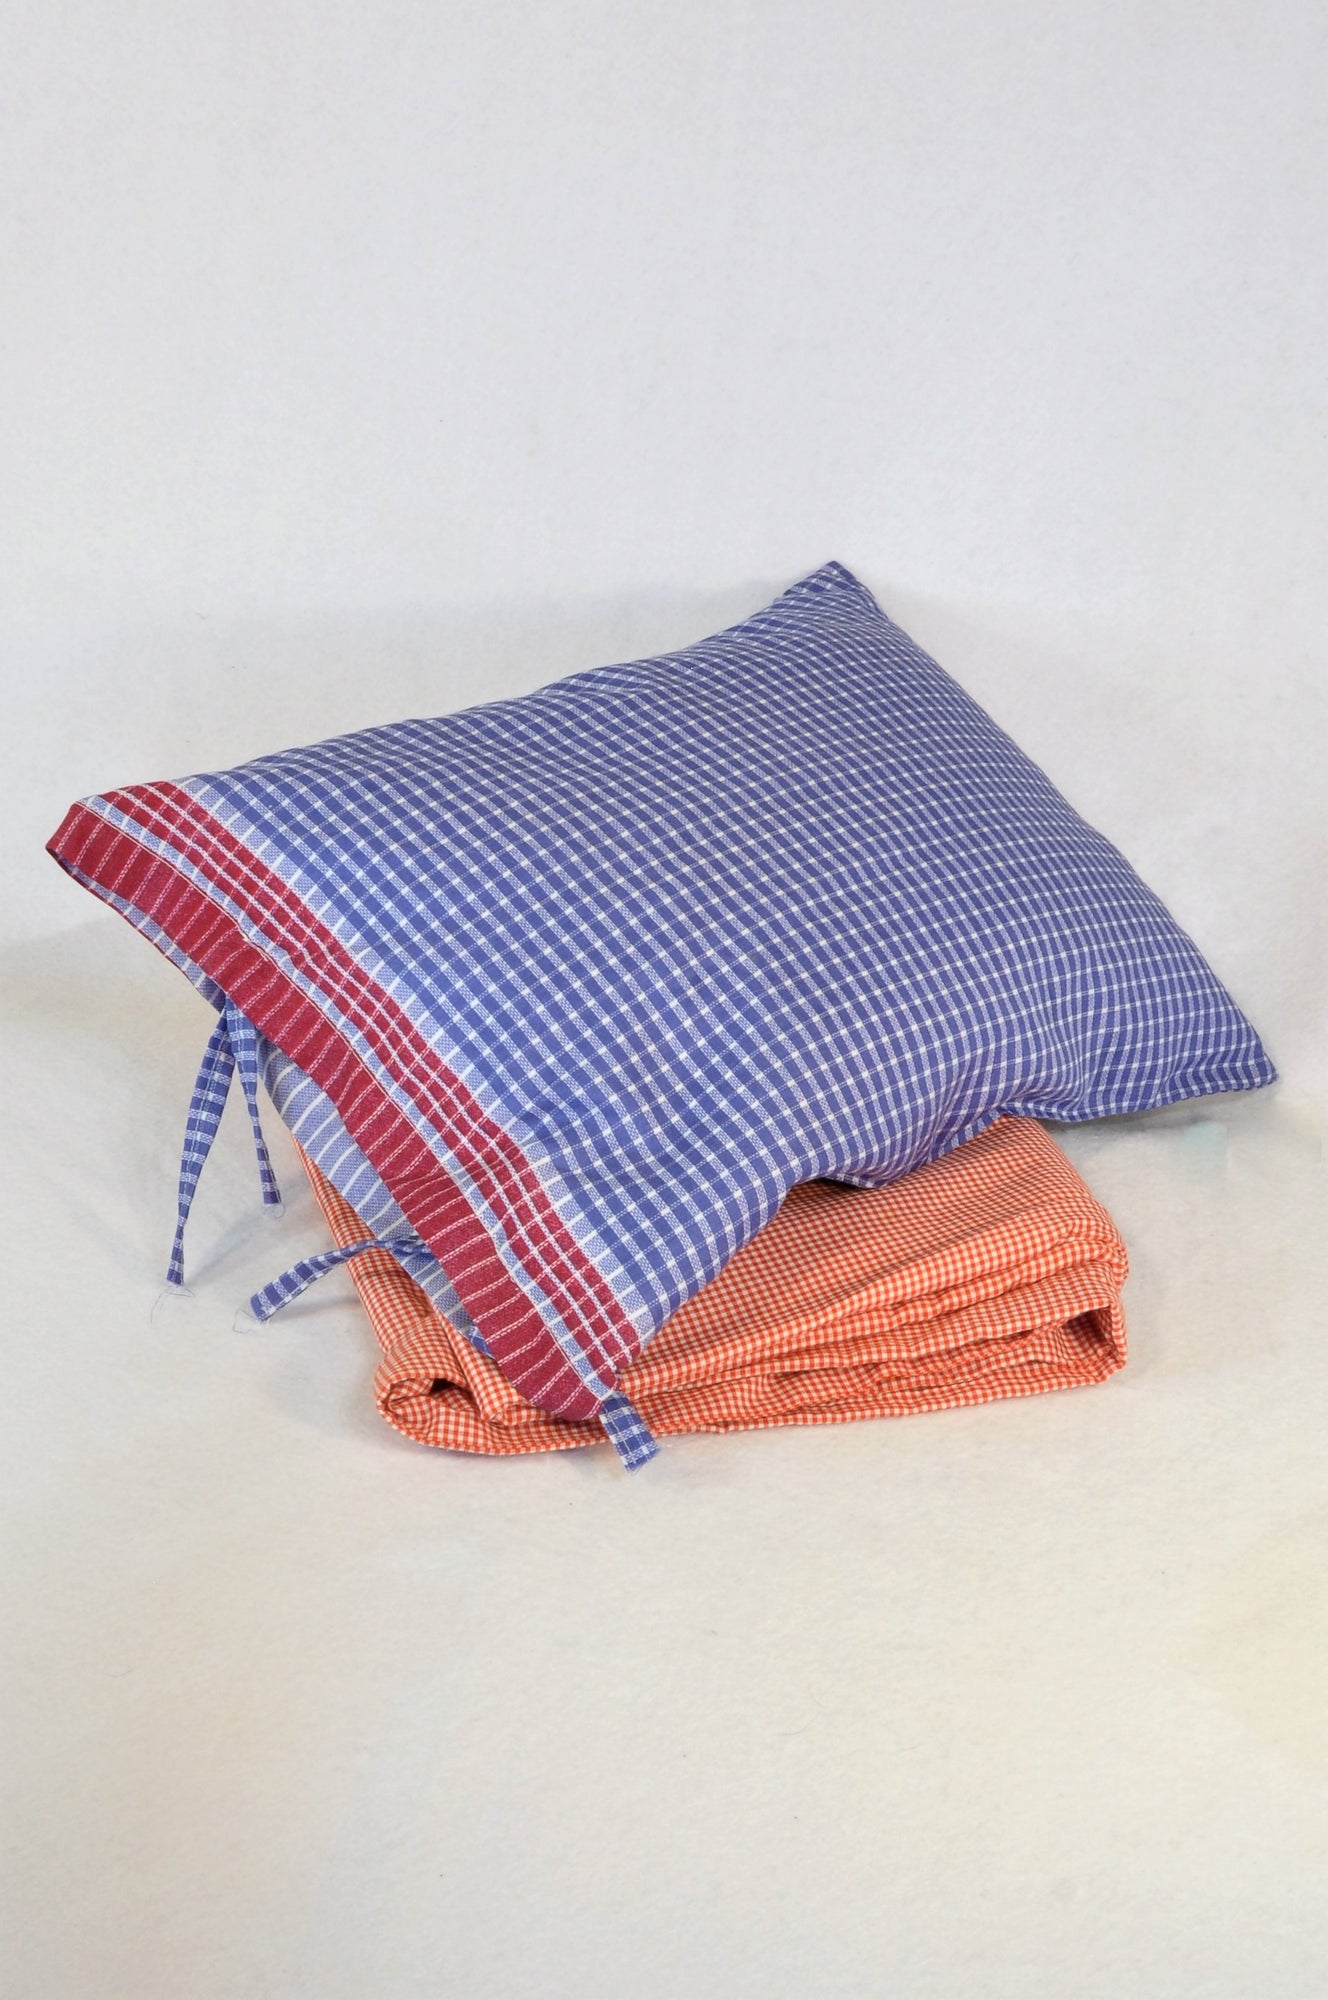 Unbranded Red Check Cot Duvet Inner & Cover,  and Navy Check Pillow Case with Pillow Bedding Set Unisex N-B to 2 years